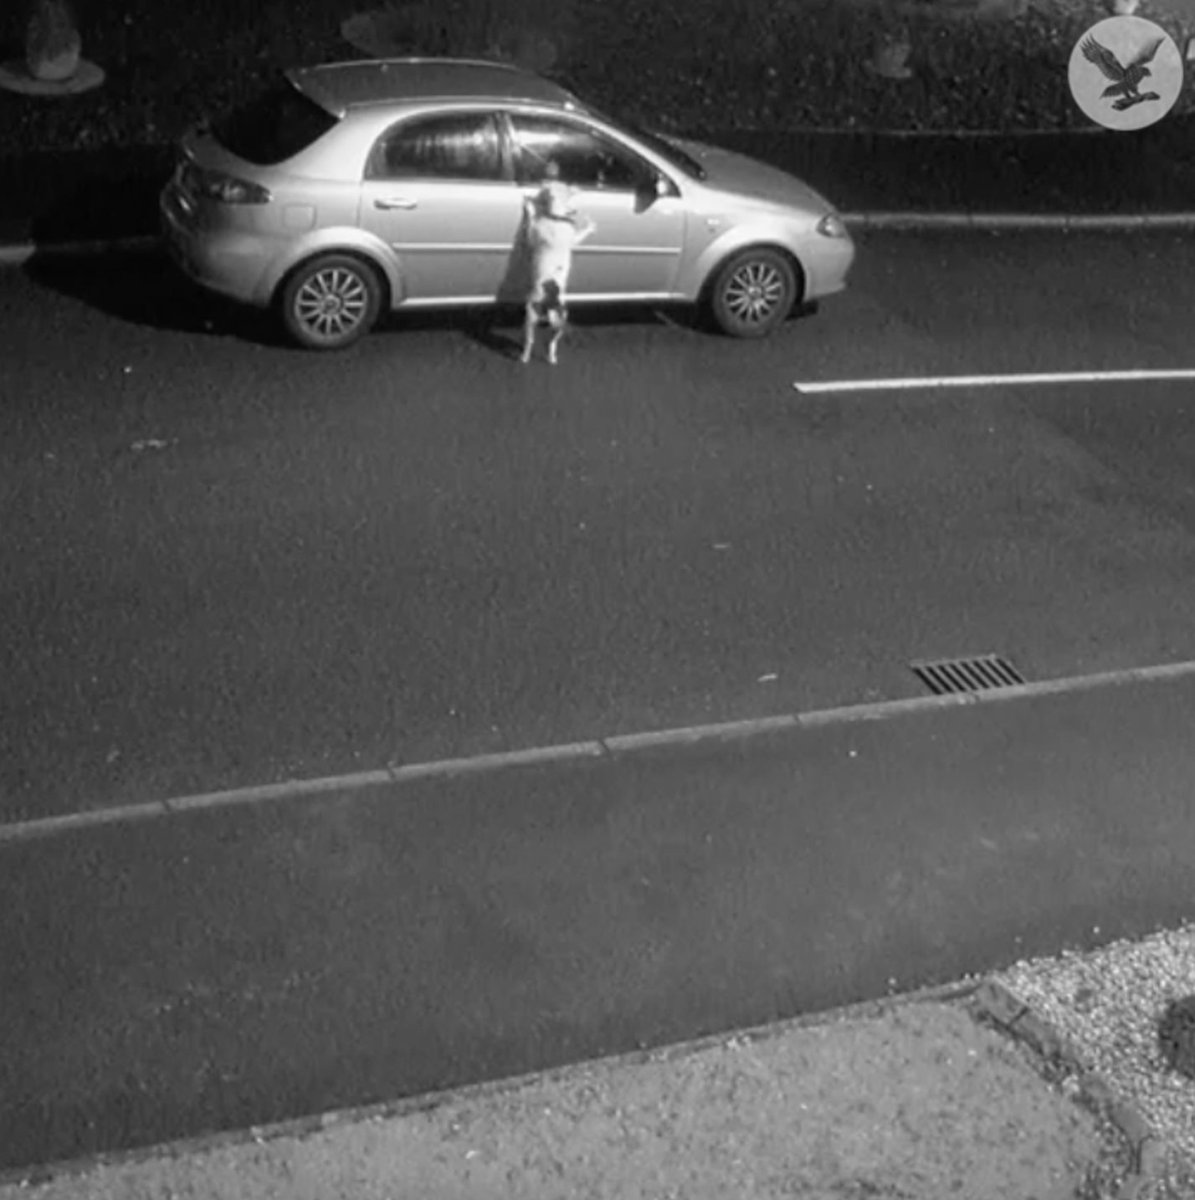 CCTV shows moment dog is abandoned at side of road right before Christmas